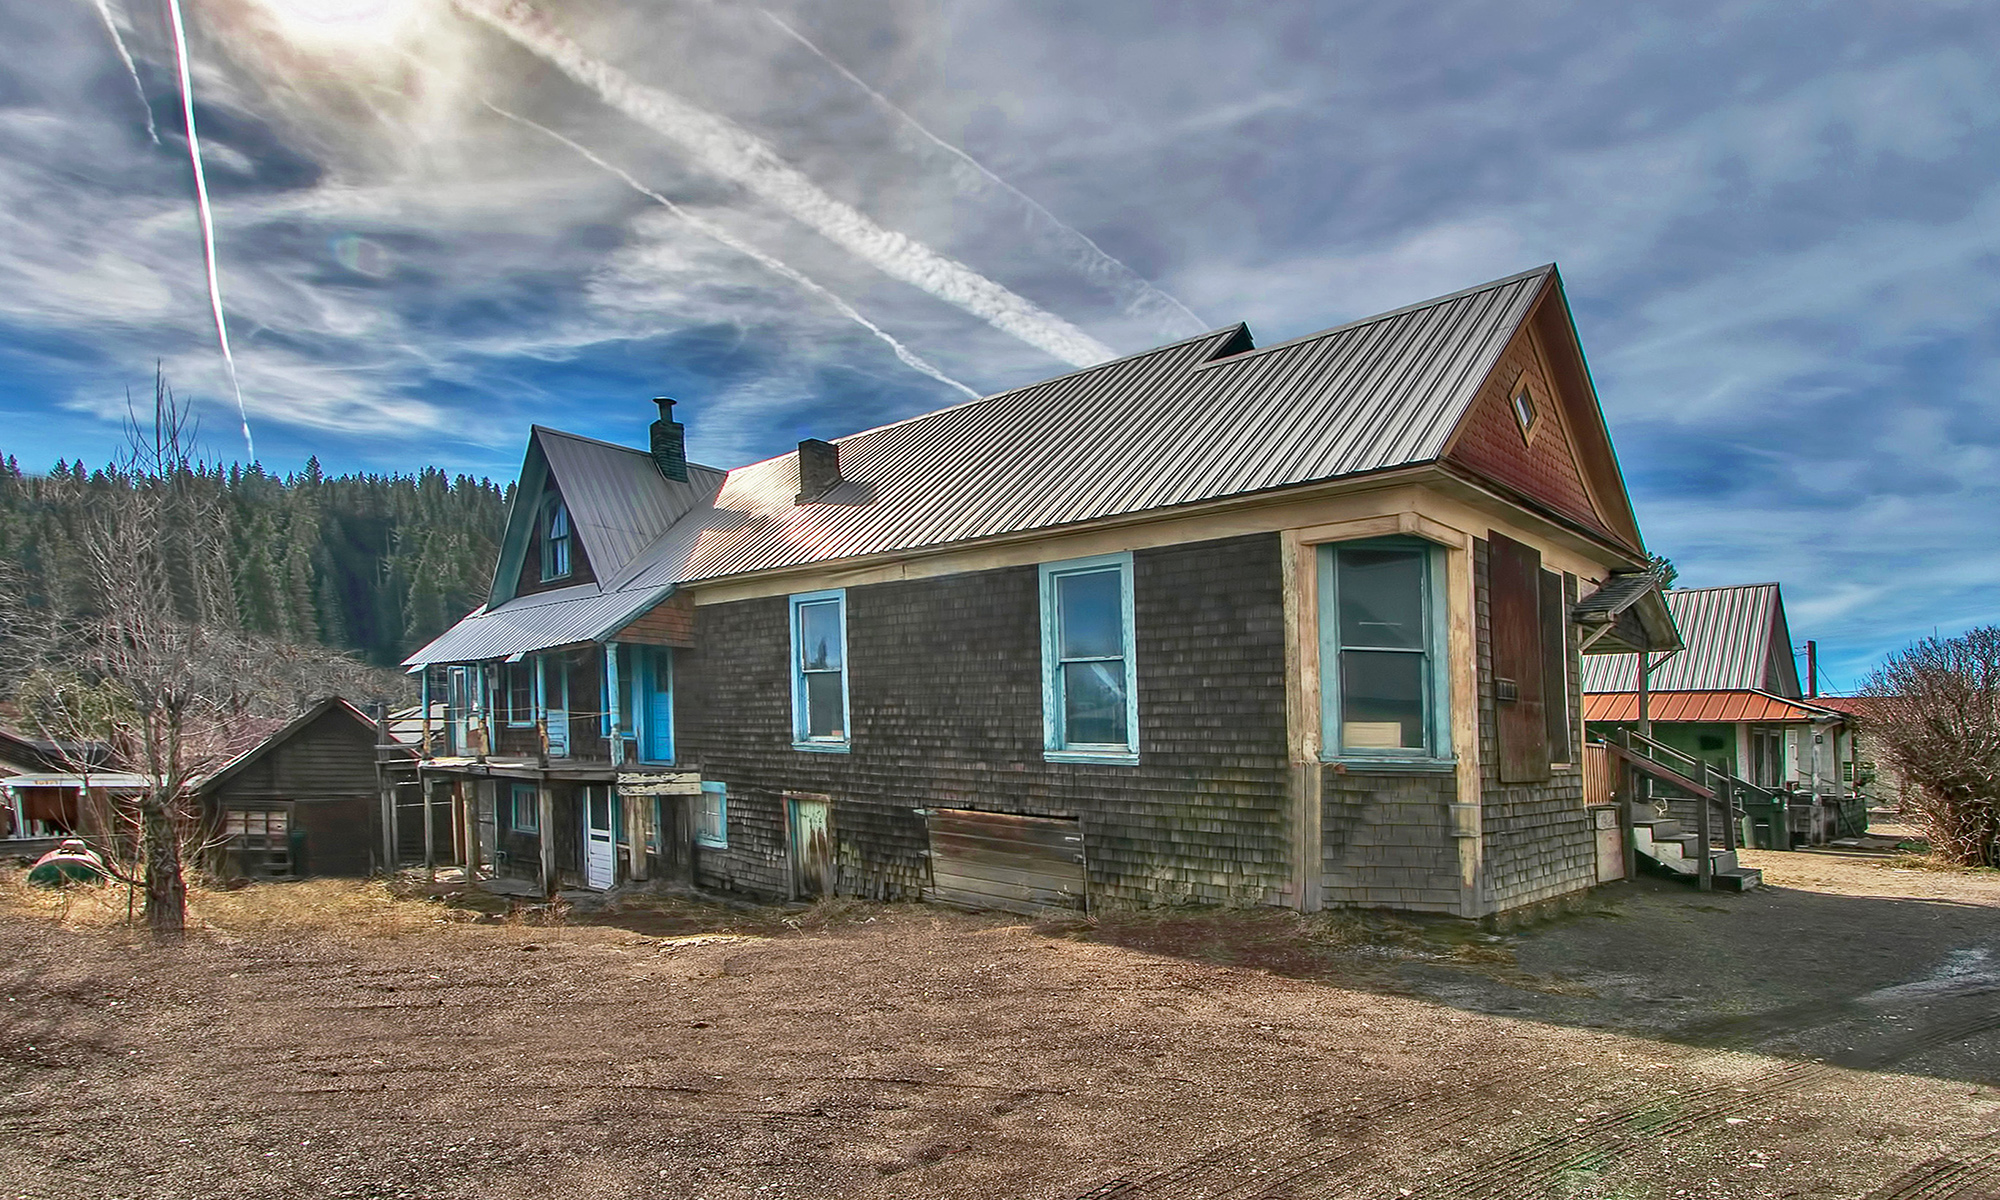 Single Family Home for Active at 10175 West River Street, Truckee, CA Truckee, California 96161 United States